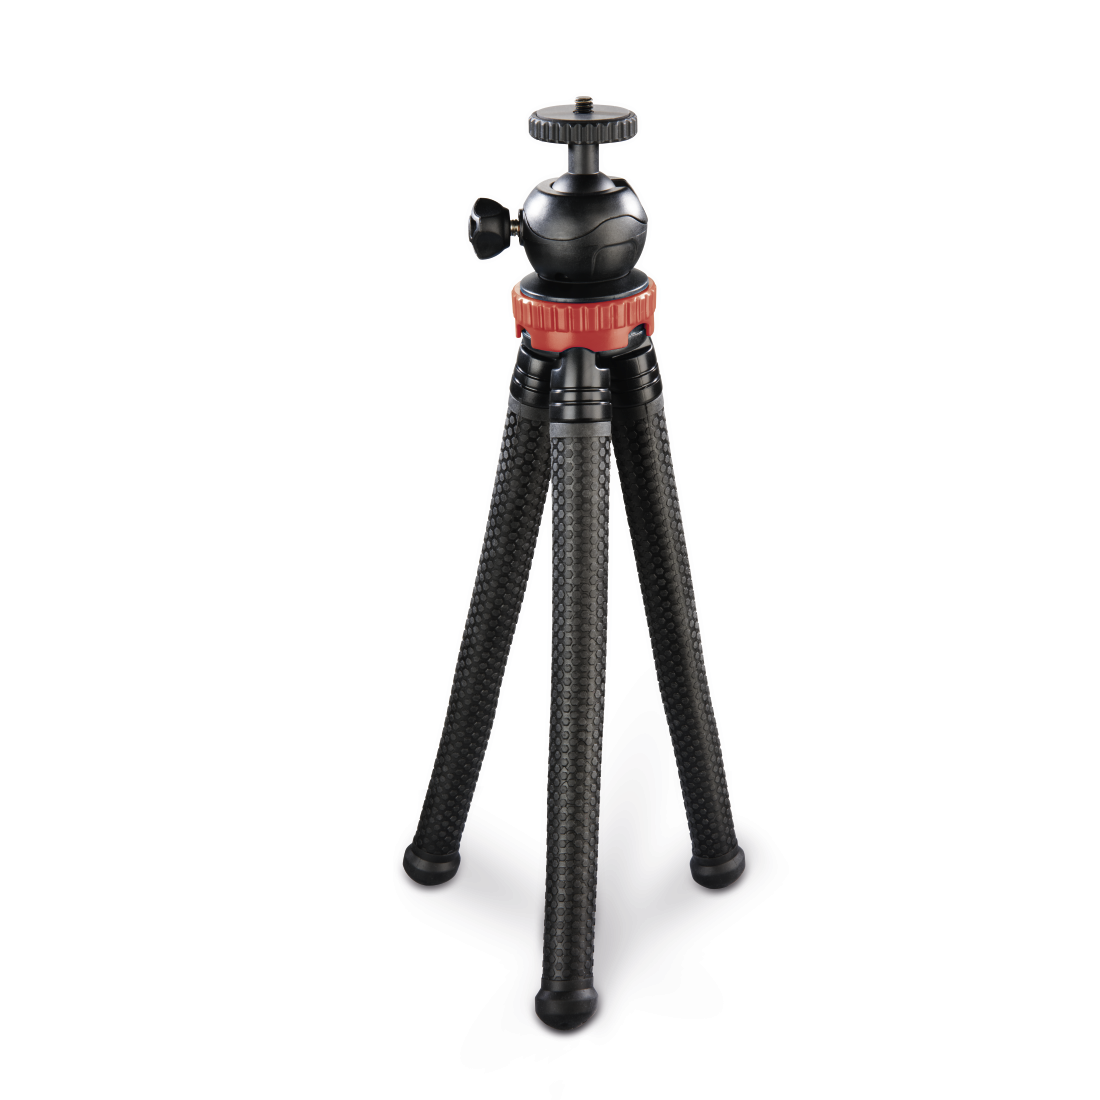 abx2 High-Res Image 2 - Hama, FlexPro Tripod for Smartphone, GoPro and Photo Cameras, 27 cm, red